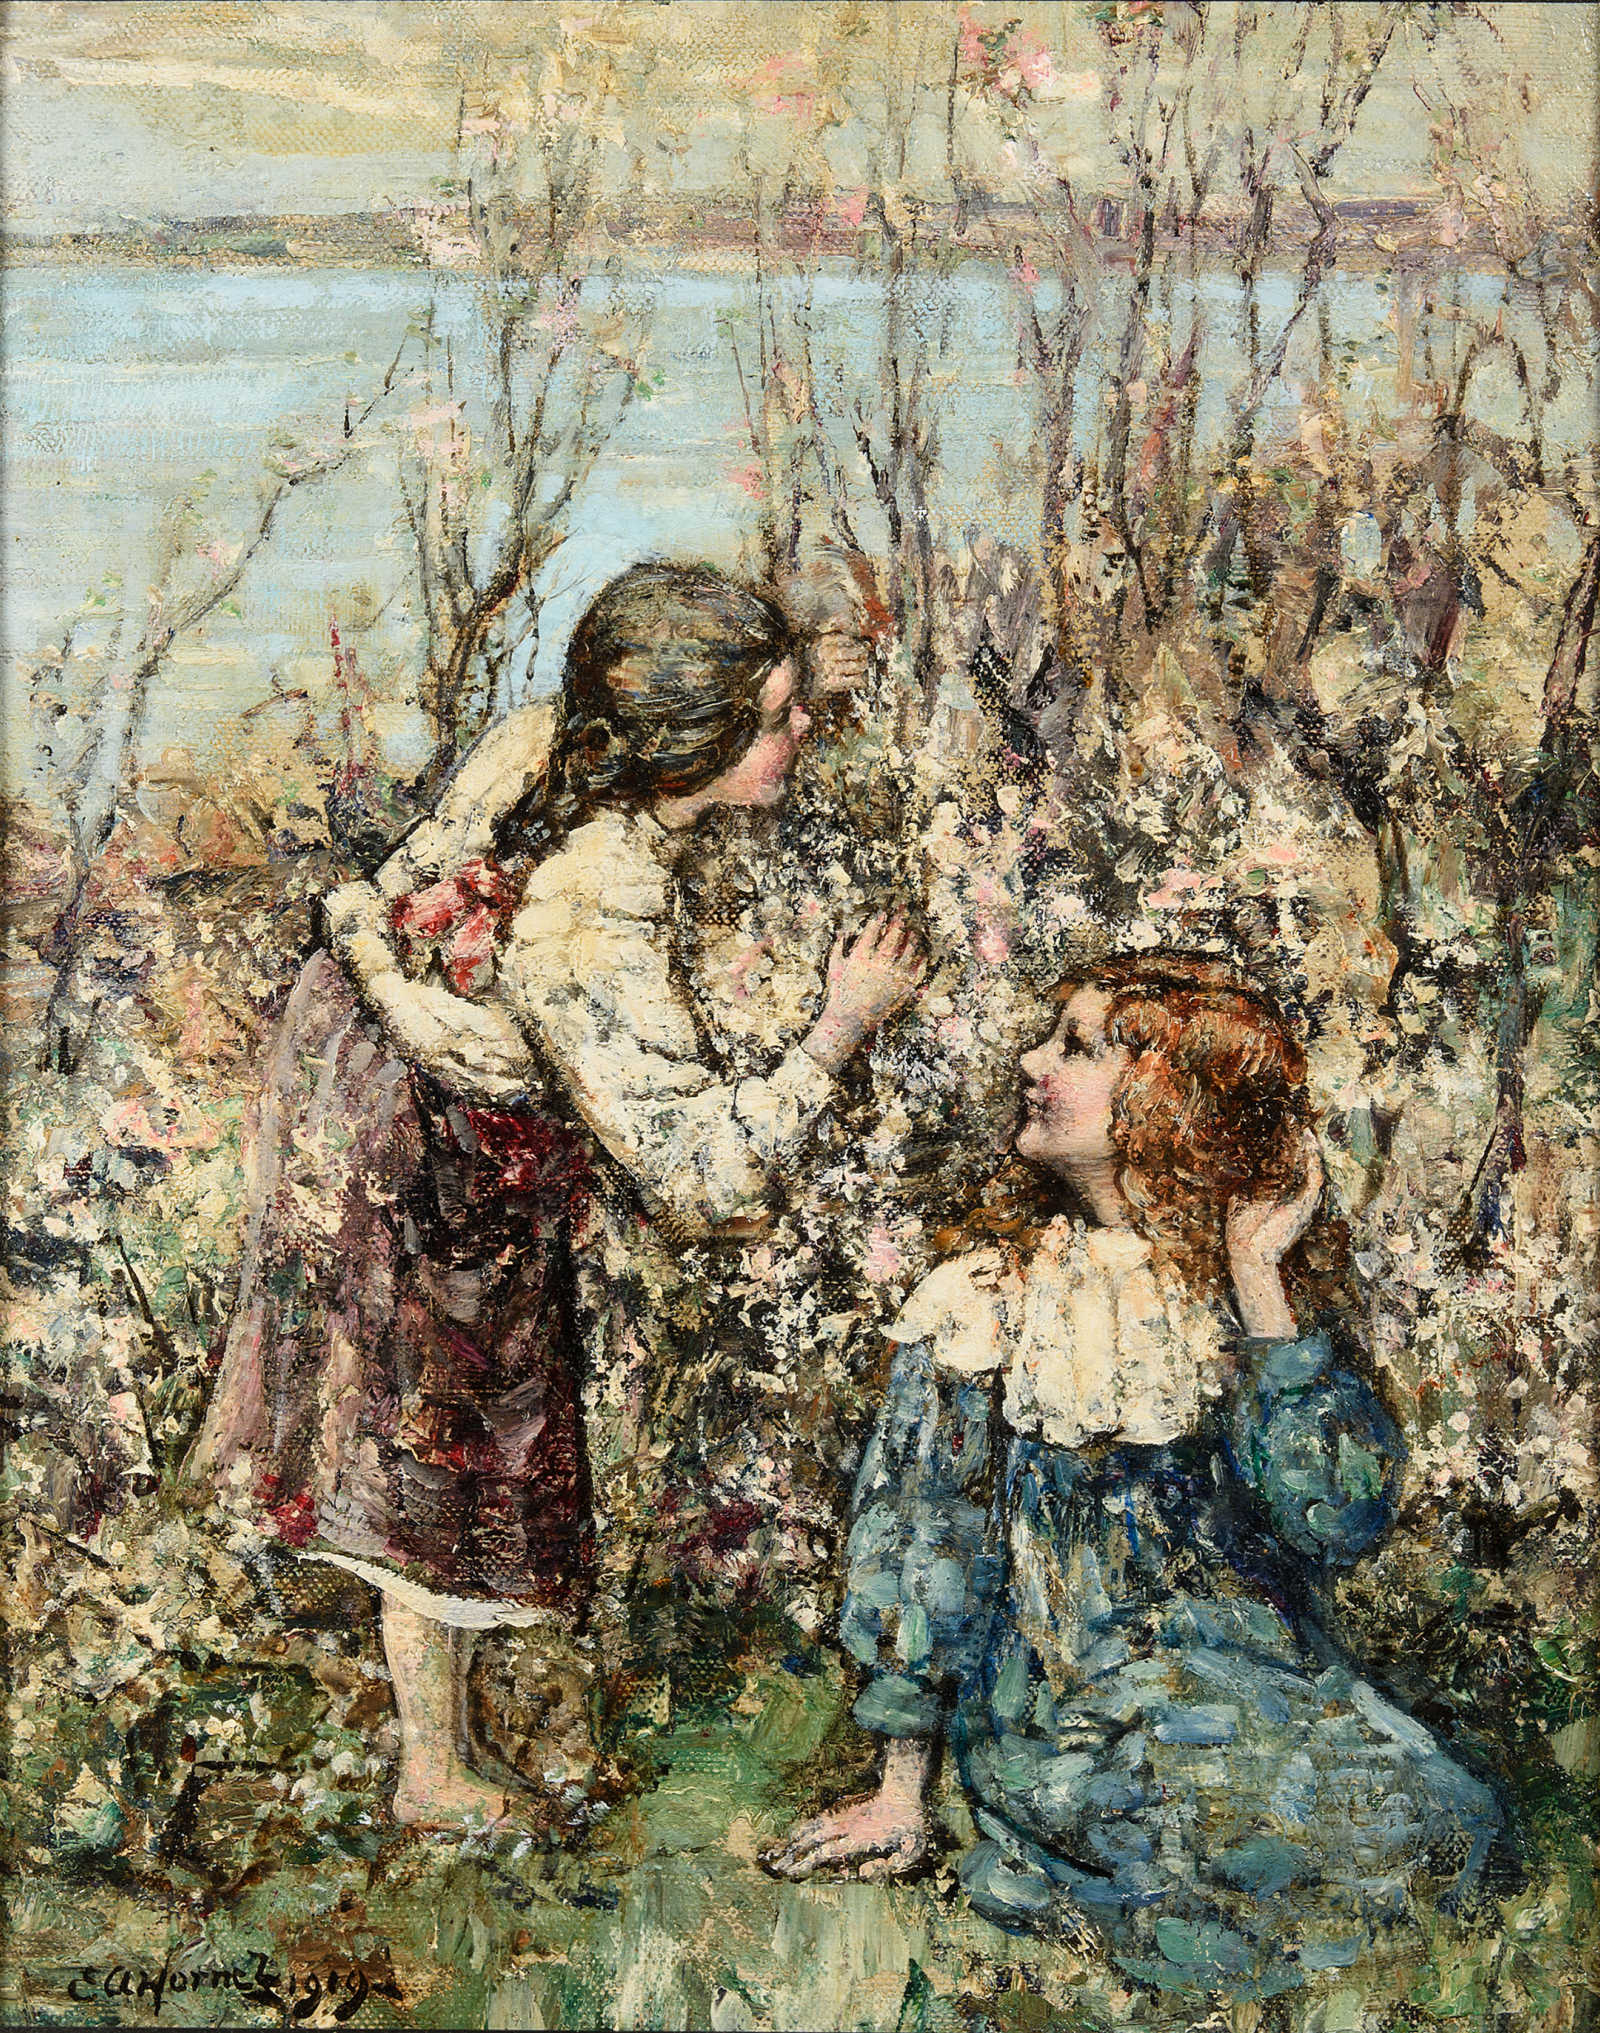 Oil painting of two young girls hiding behind a bush of apple blossoms with water and the sky in the background by Edward Hornel